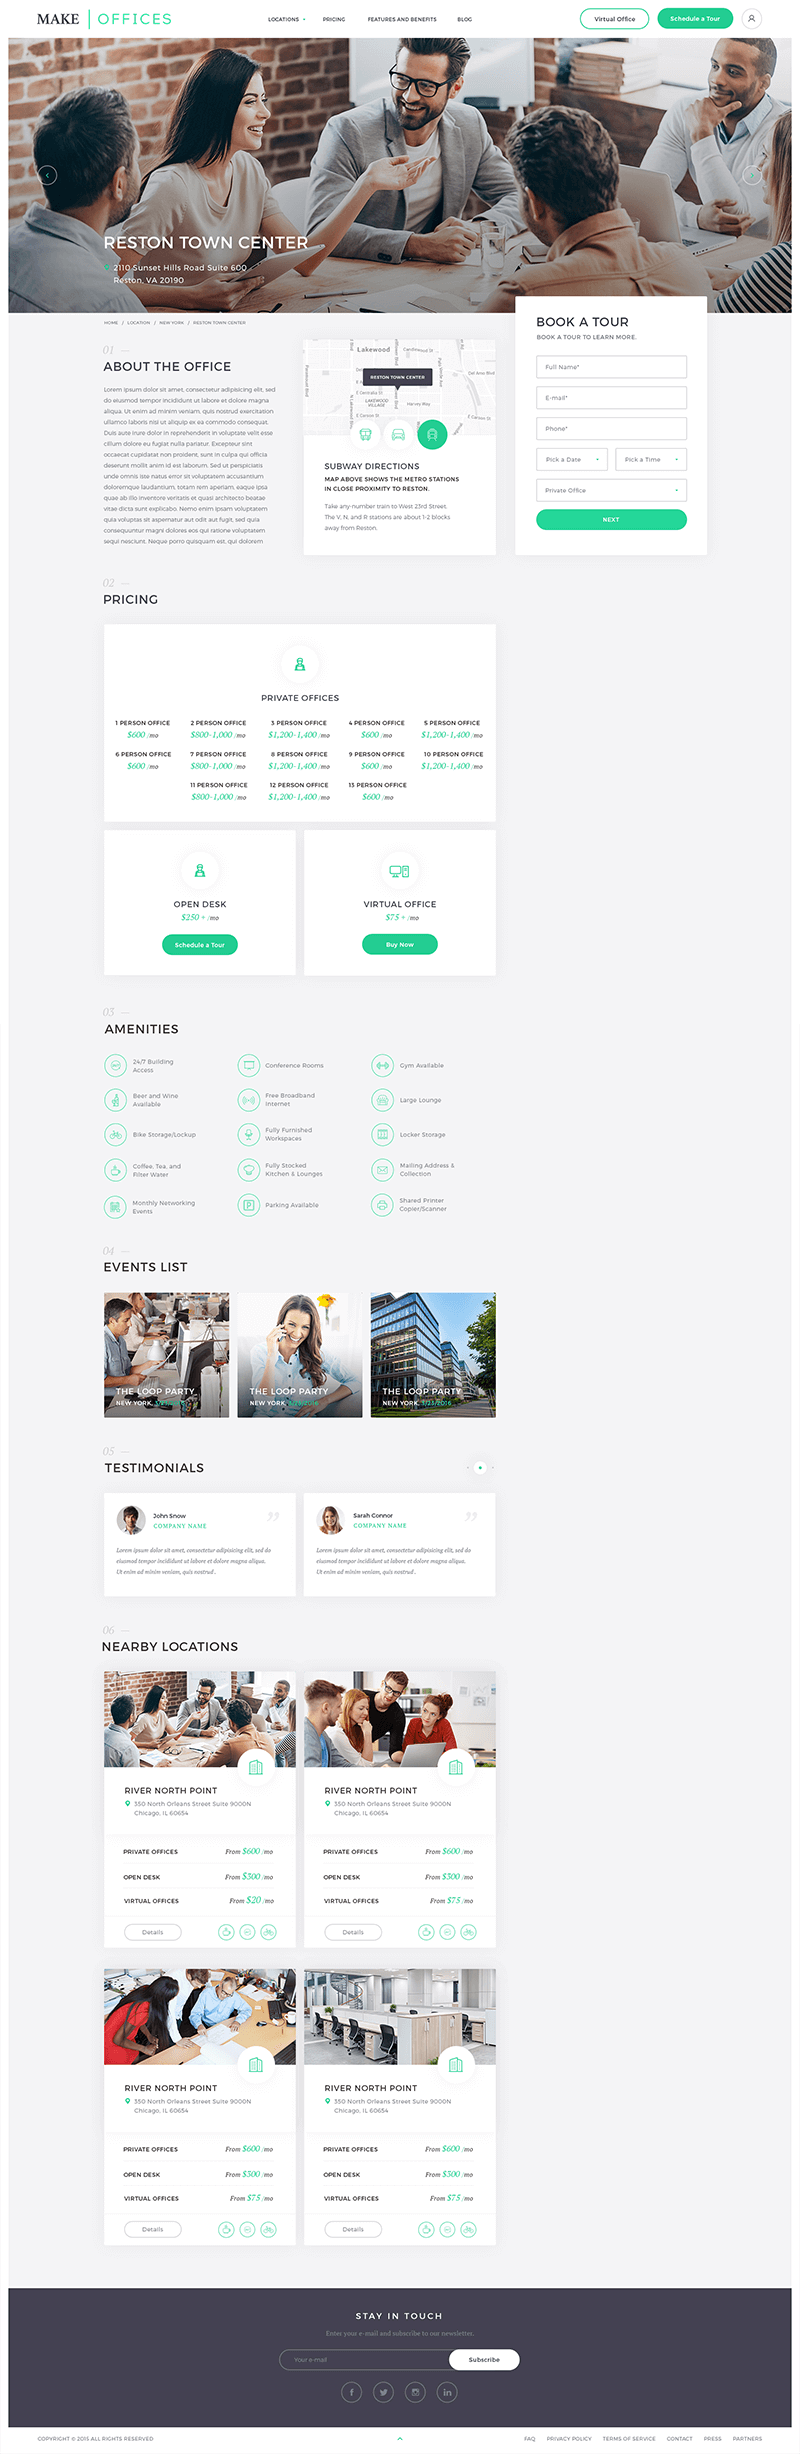 Make offices Page Screenshot